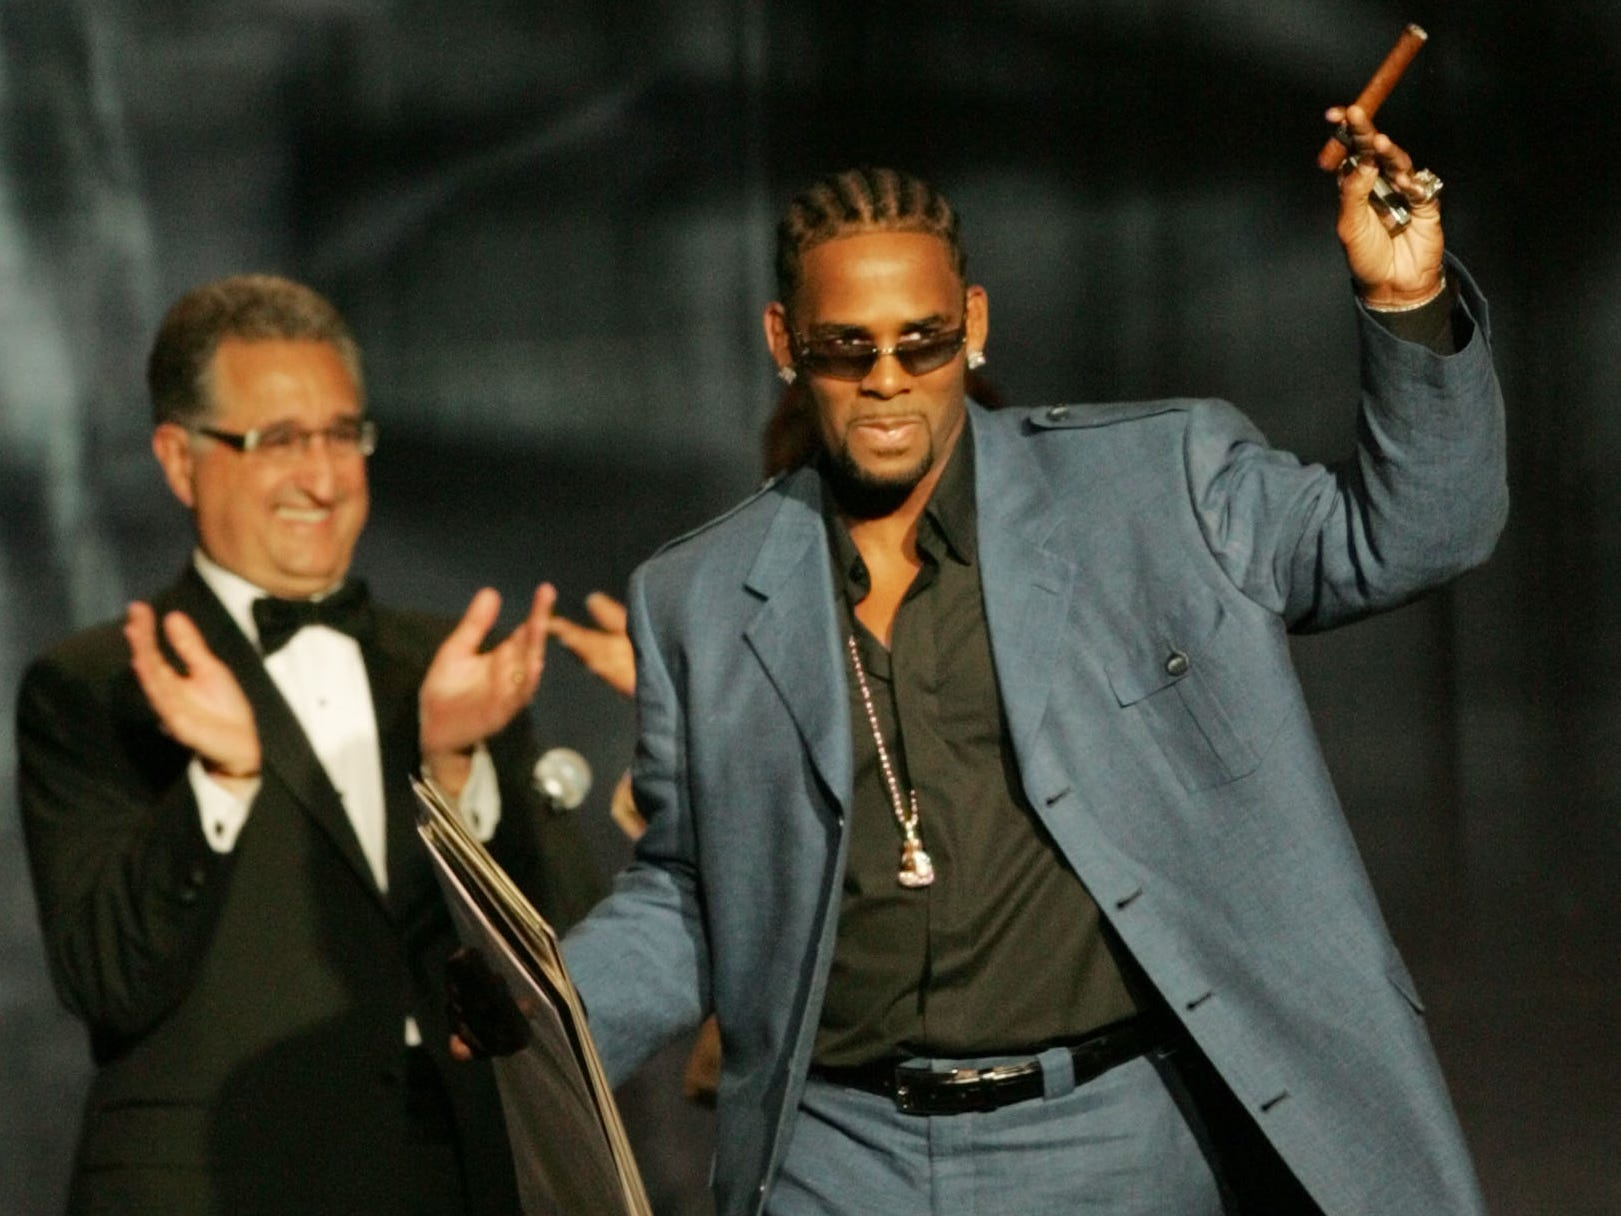 R. Kelly, right, acknowledges  the crowd as BMI President and CEO Del Bryant applauds after Kelly received a 2005 BMI Urban Music Award on Aug. 26, 2005, in Miami Beach, Fla. Kelly received several awards including a BMI Crystal as Urban Songwriter of the Year. He was also named one of BMI's top songwriter/producers.